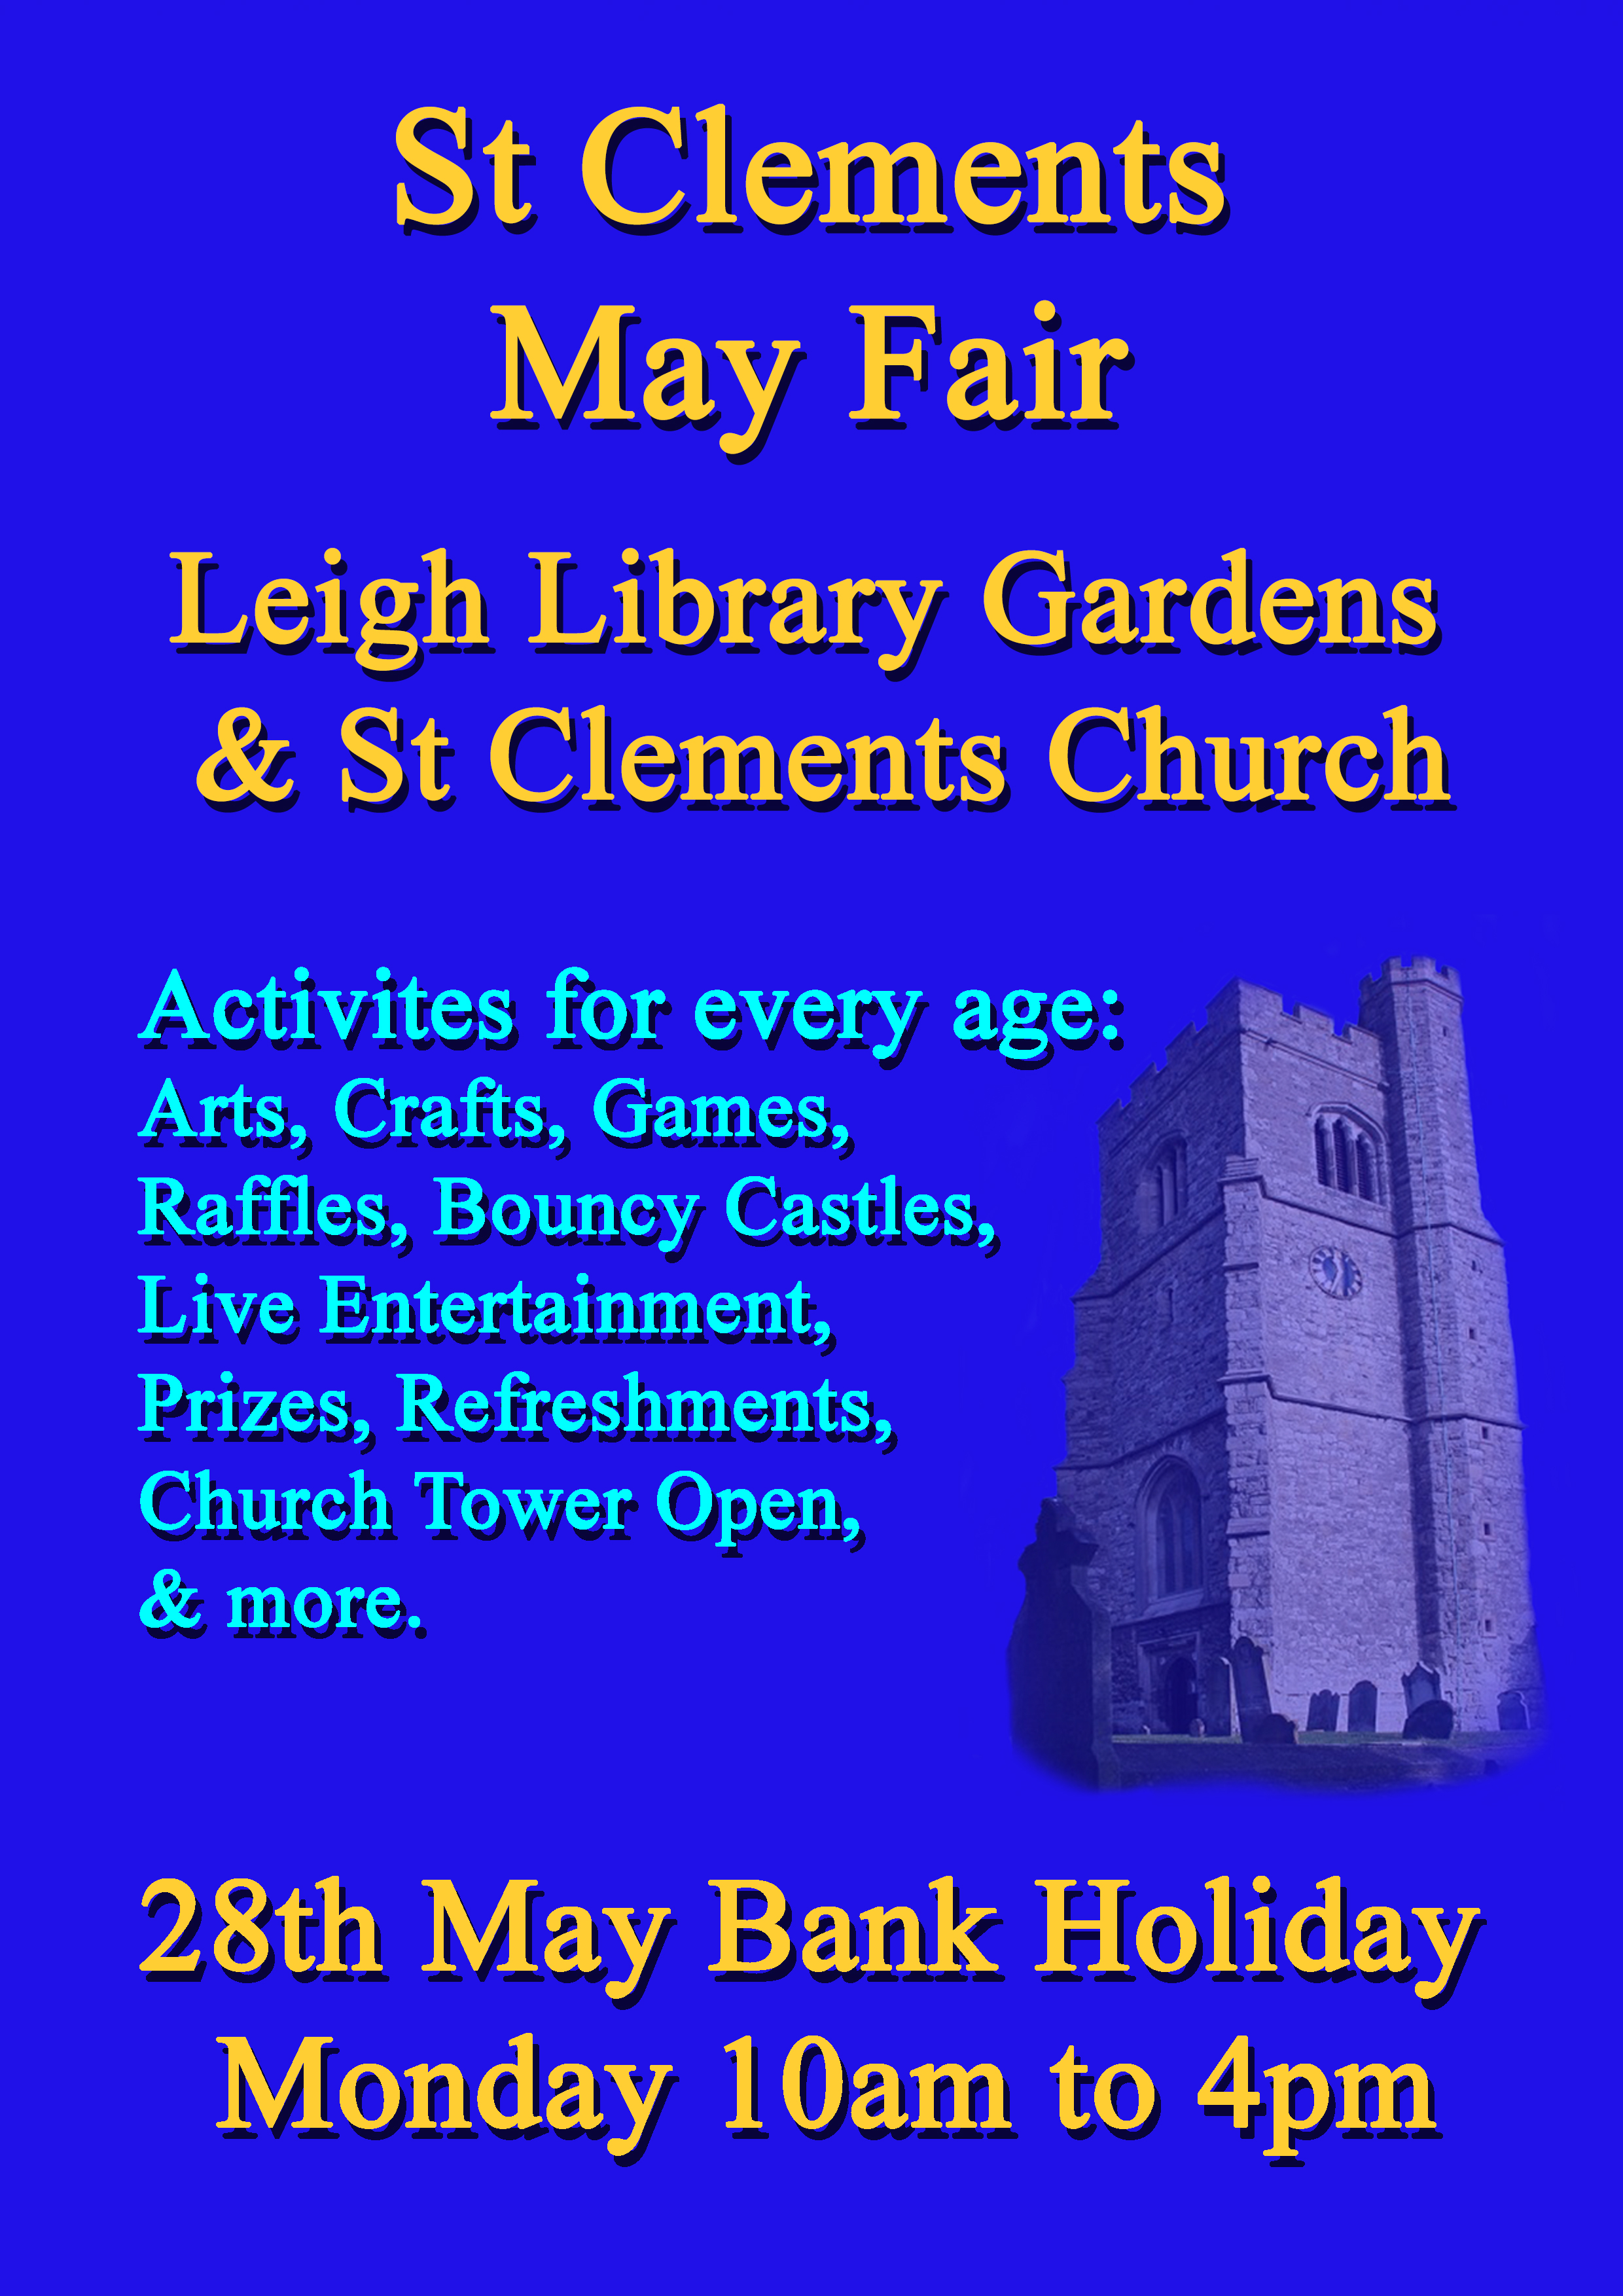 St Clements May Fair